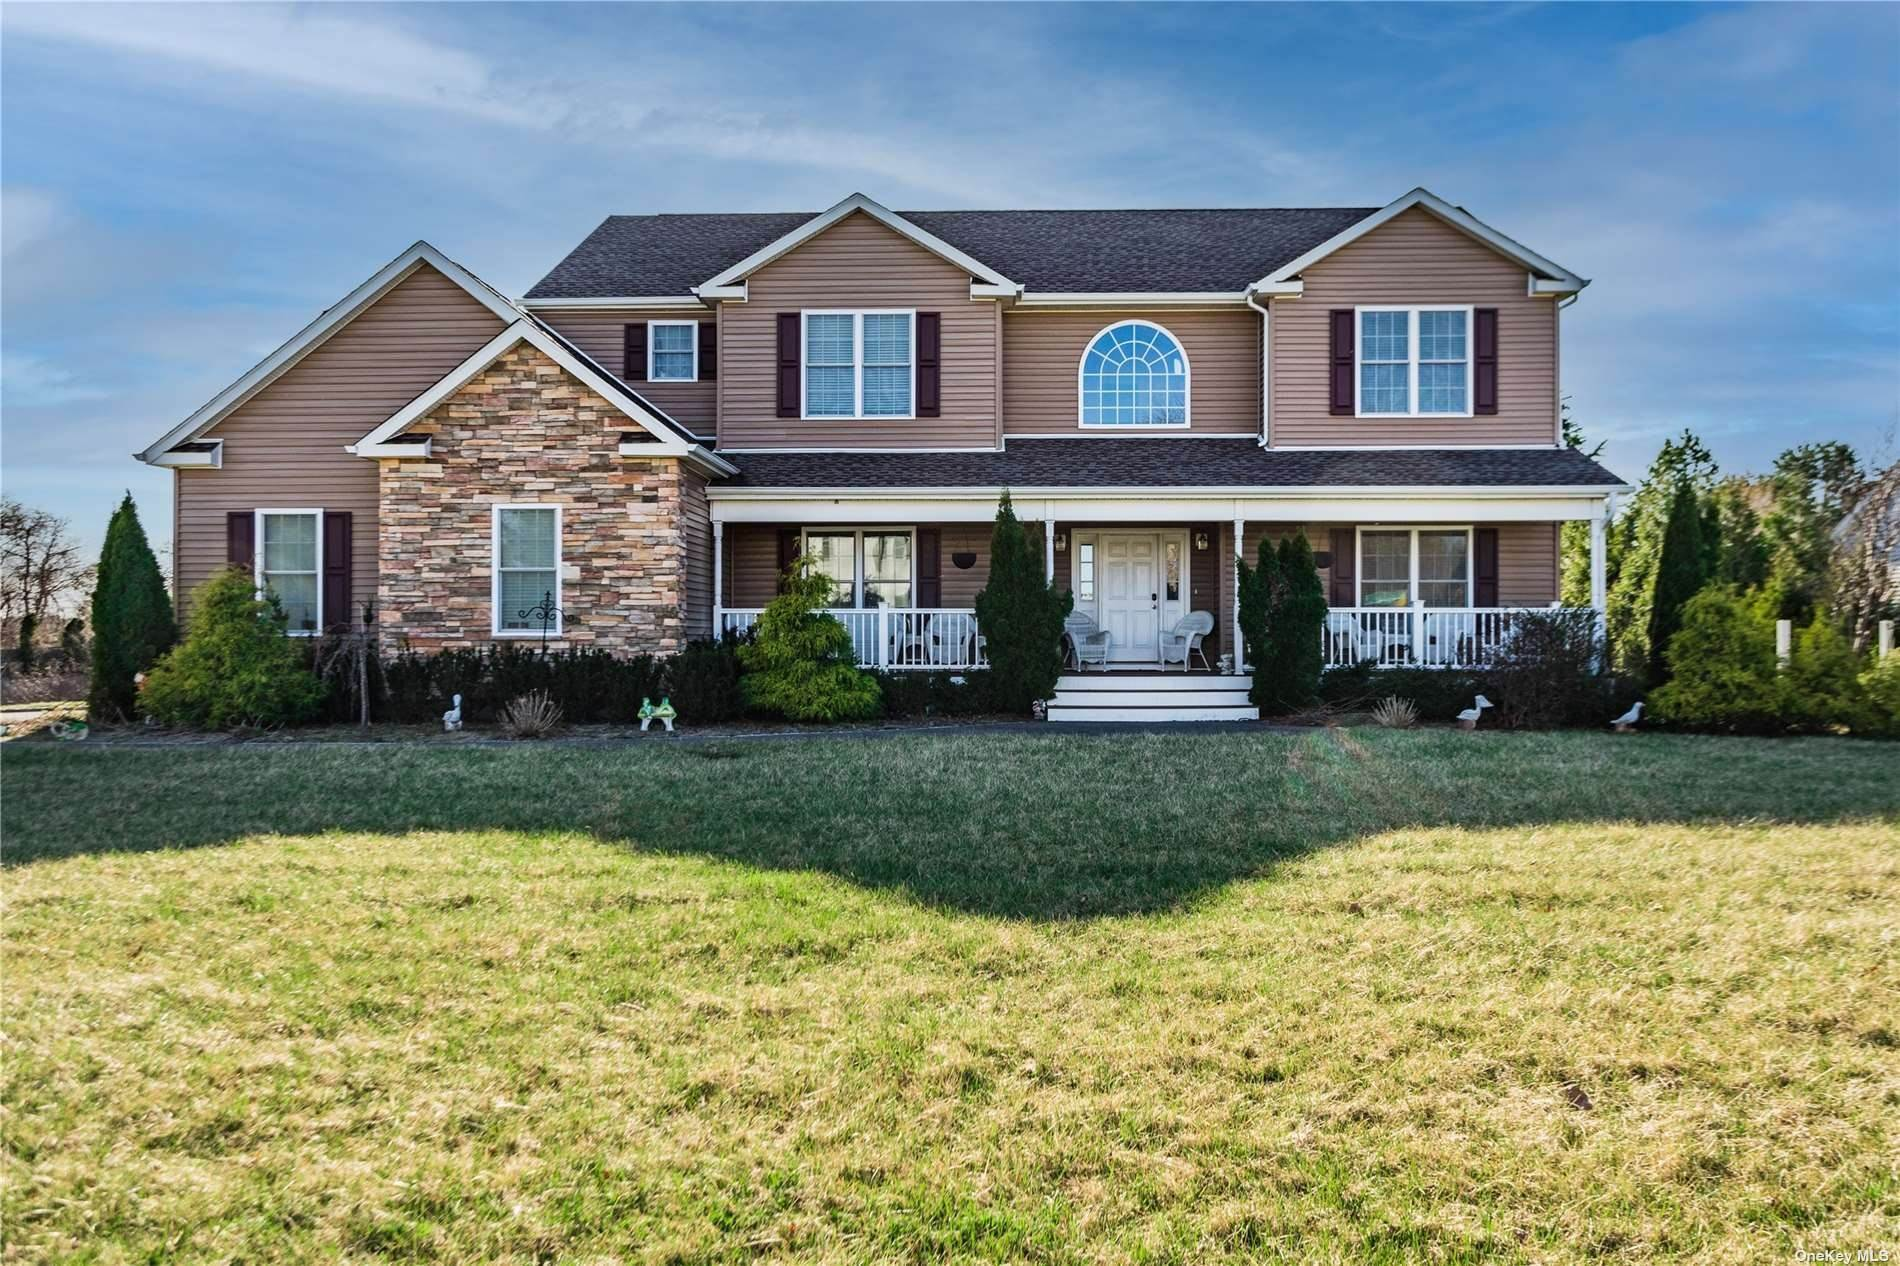 Residential for Sale at 84 Cobblestone Drive Shoreham, New York 11786 United States